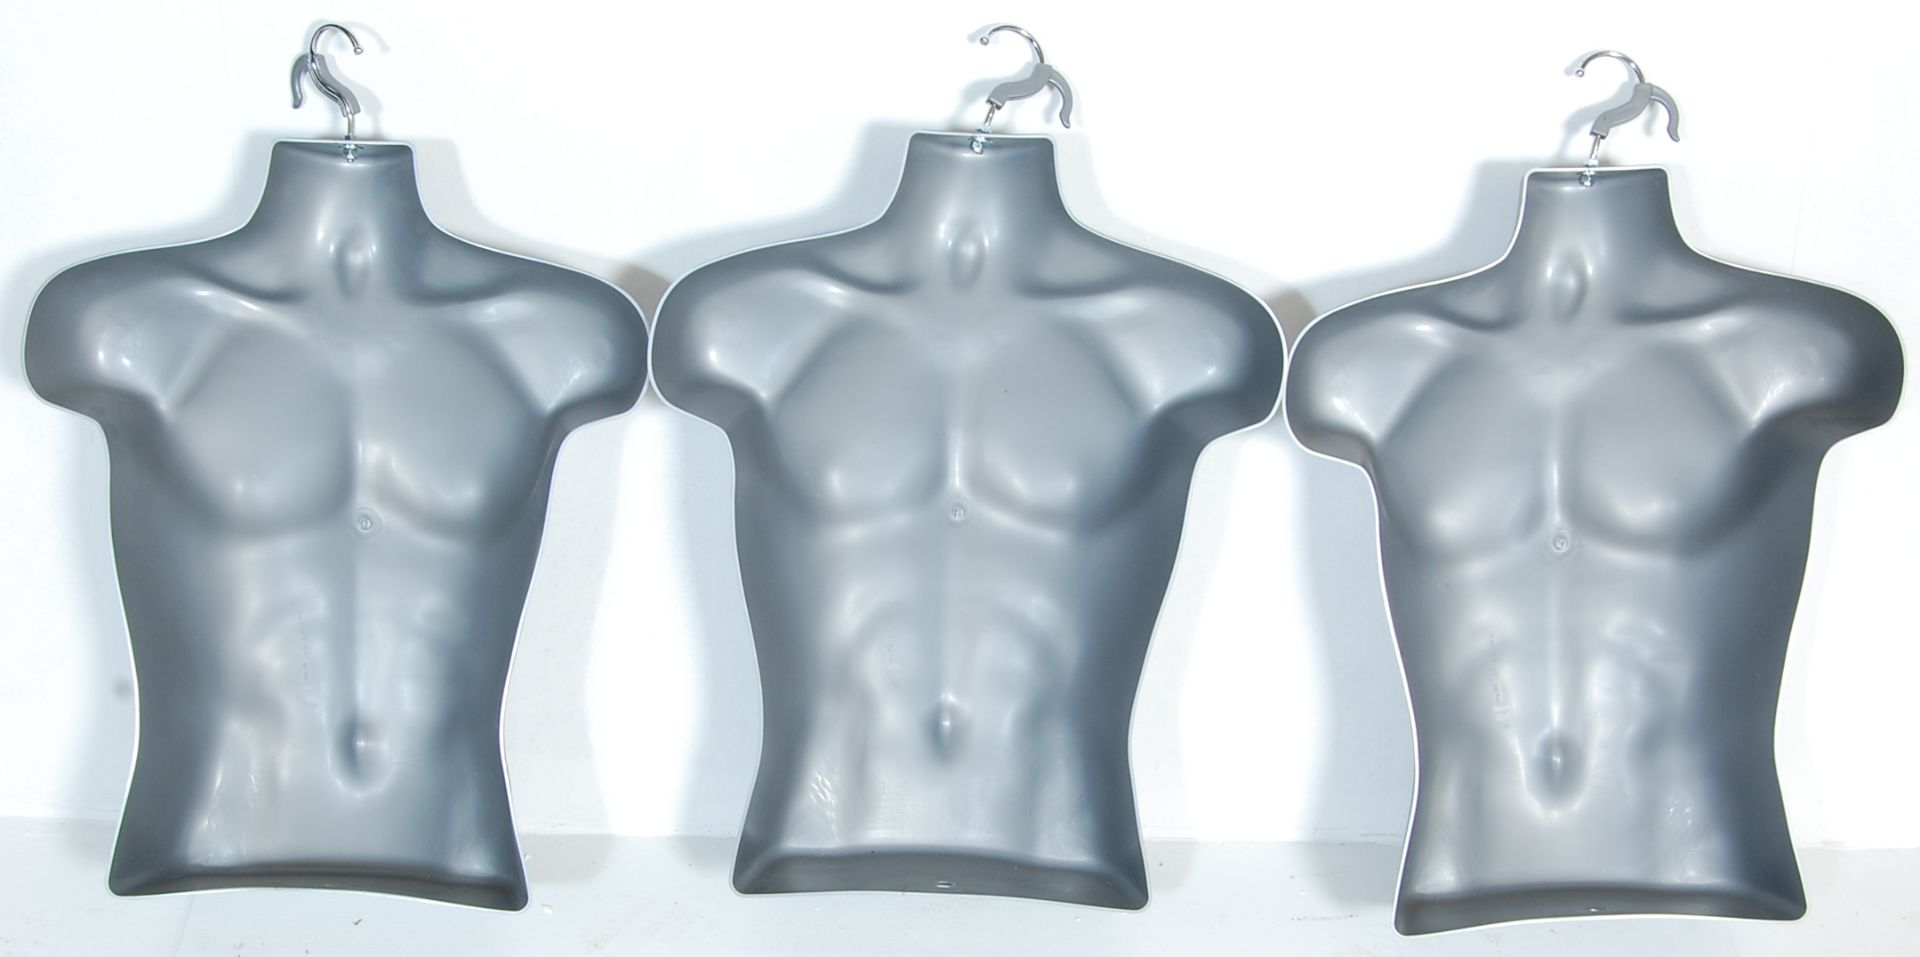 THREE CONTEMPORARY SHIP DISPLAY MALE MANNEQUIN TORSOS - Image 5 of 5